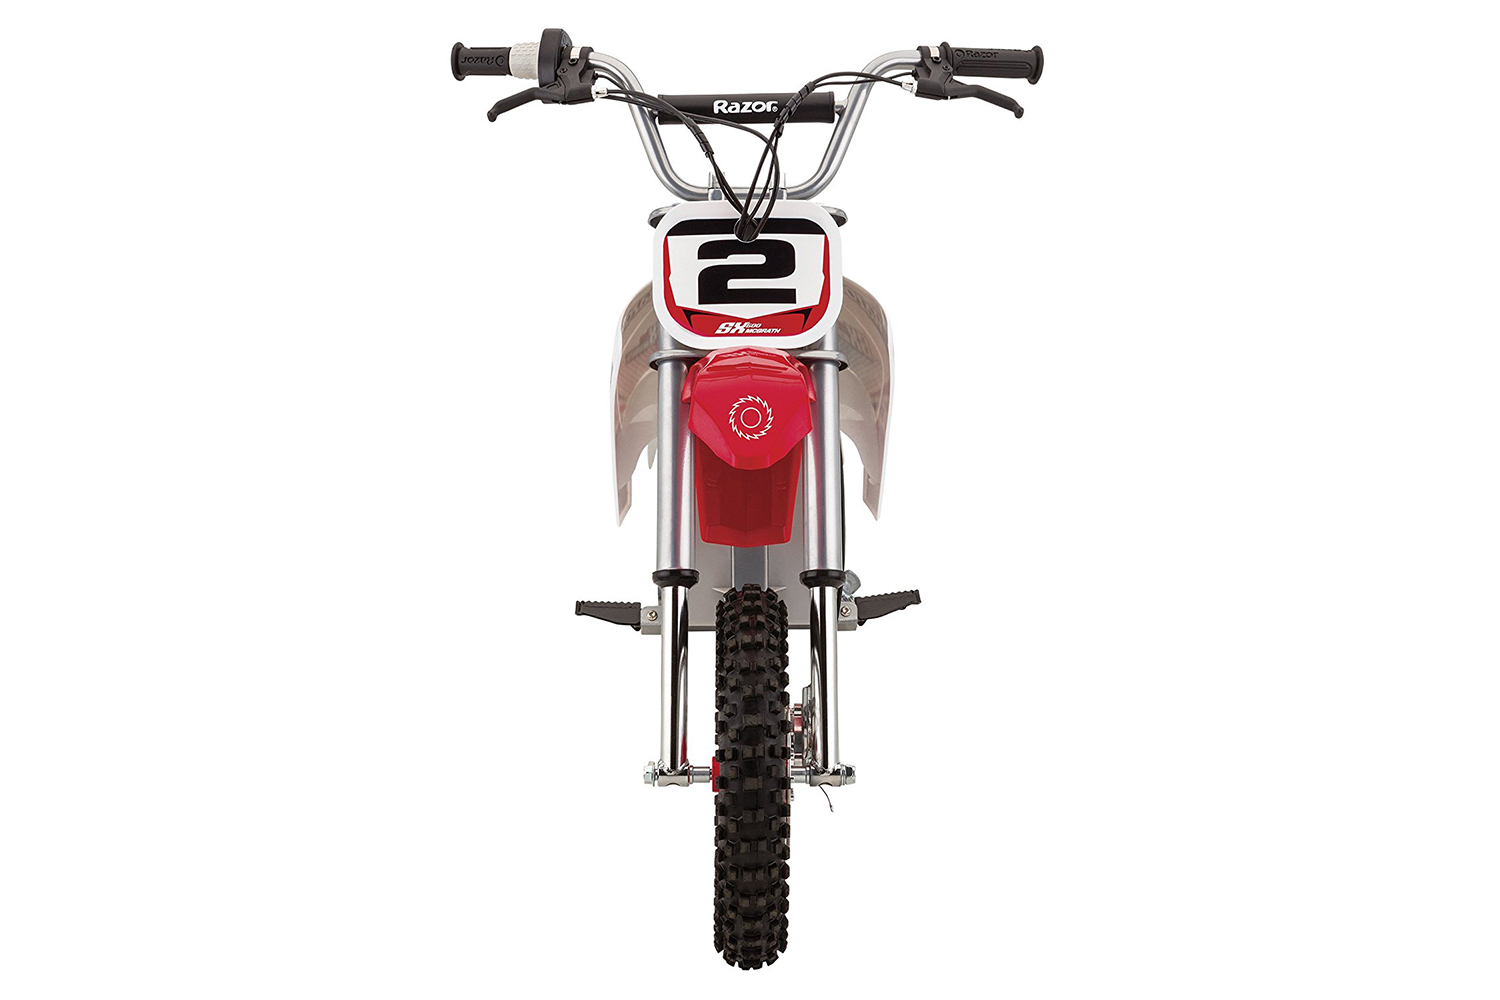 Razor Dirt Rocket Sx500 Mcgrath Motocross Electric Scooter